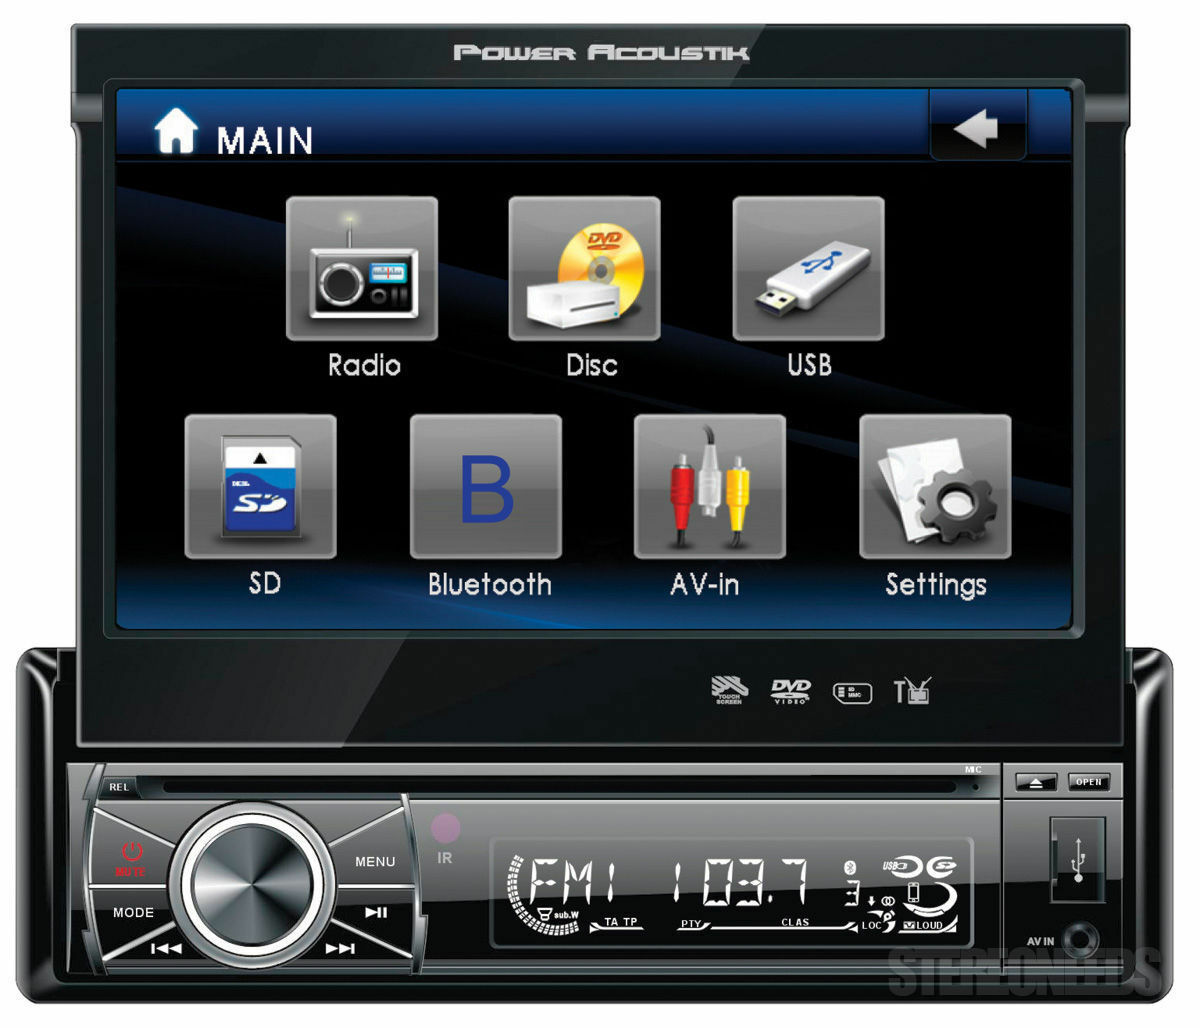 s l1600 power acoustik video in dash units without gps ebay soundstream vr-931nb wire harness at bayanpartner.co